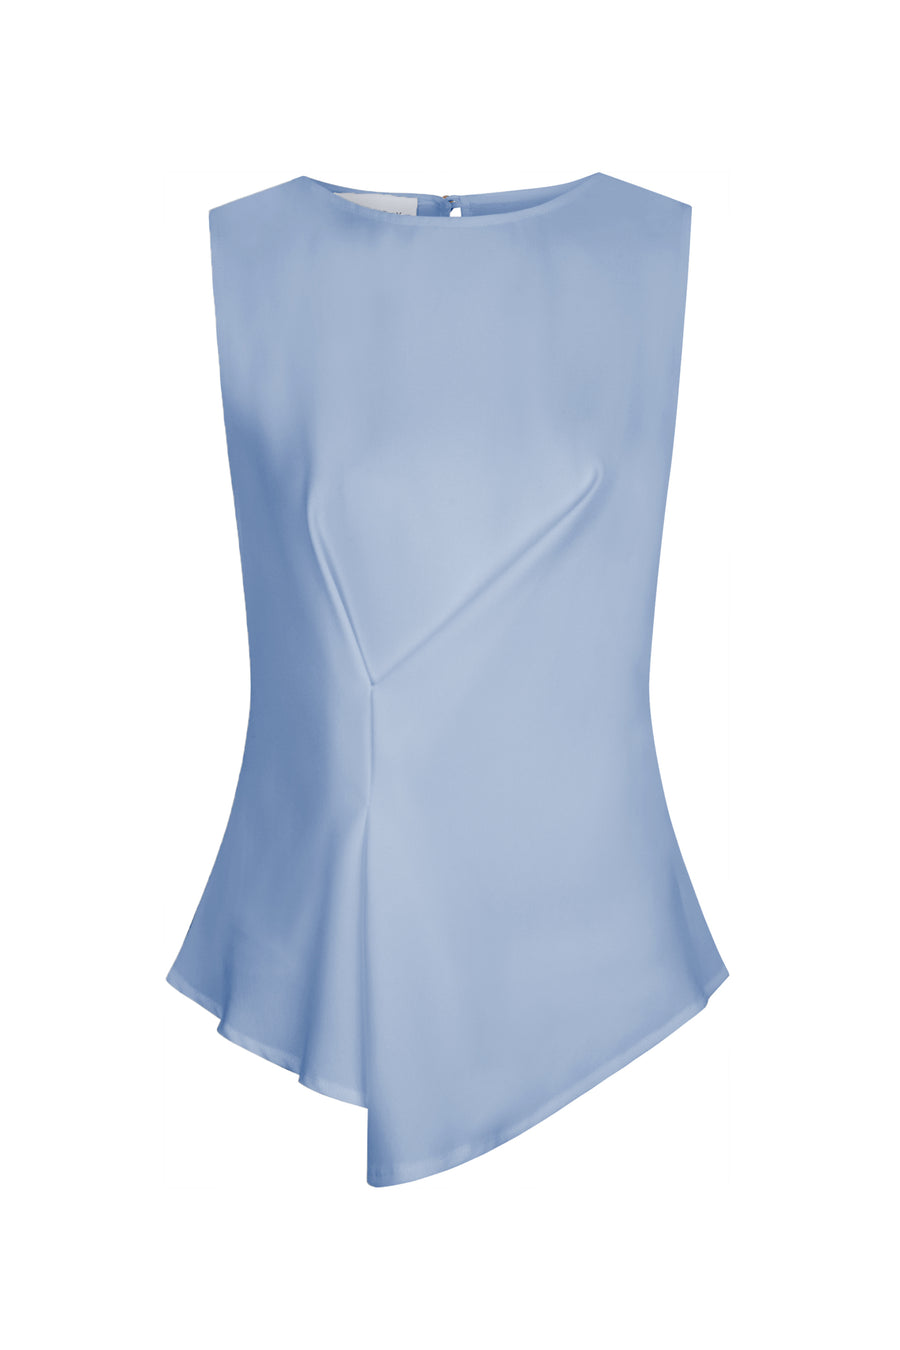 Deacon Cornflower Blue Top